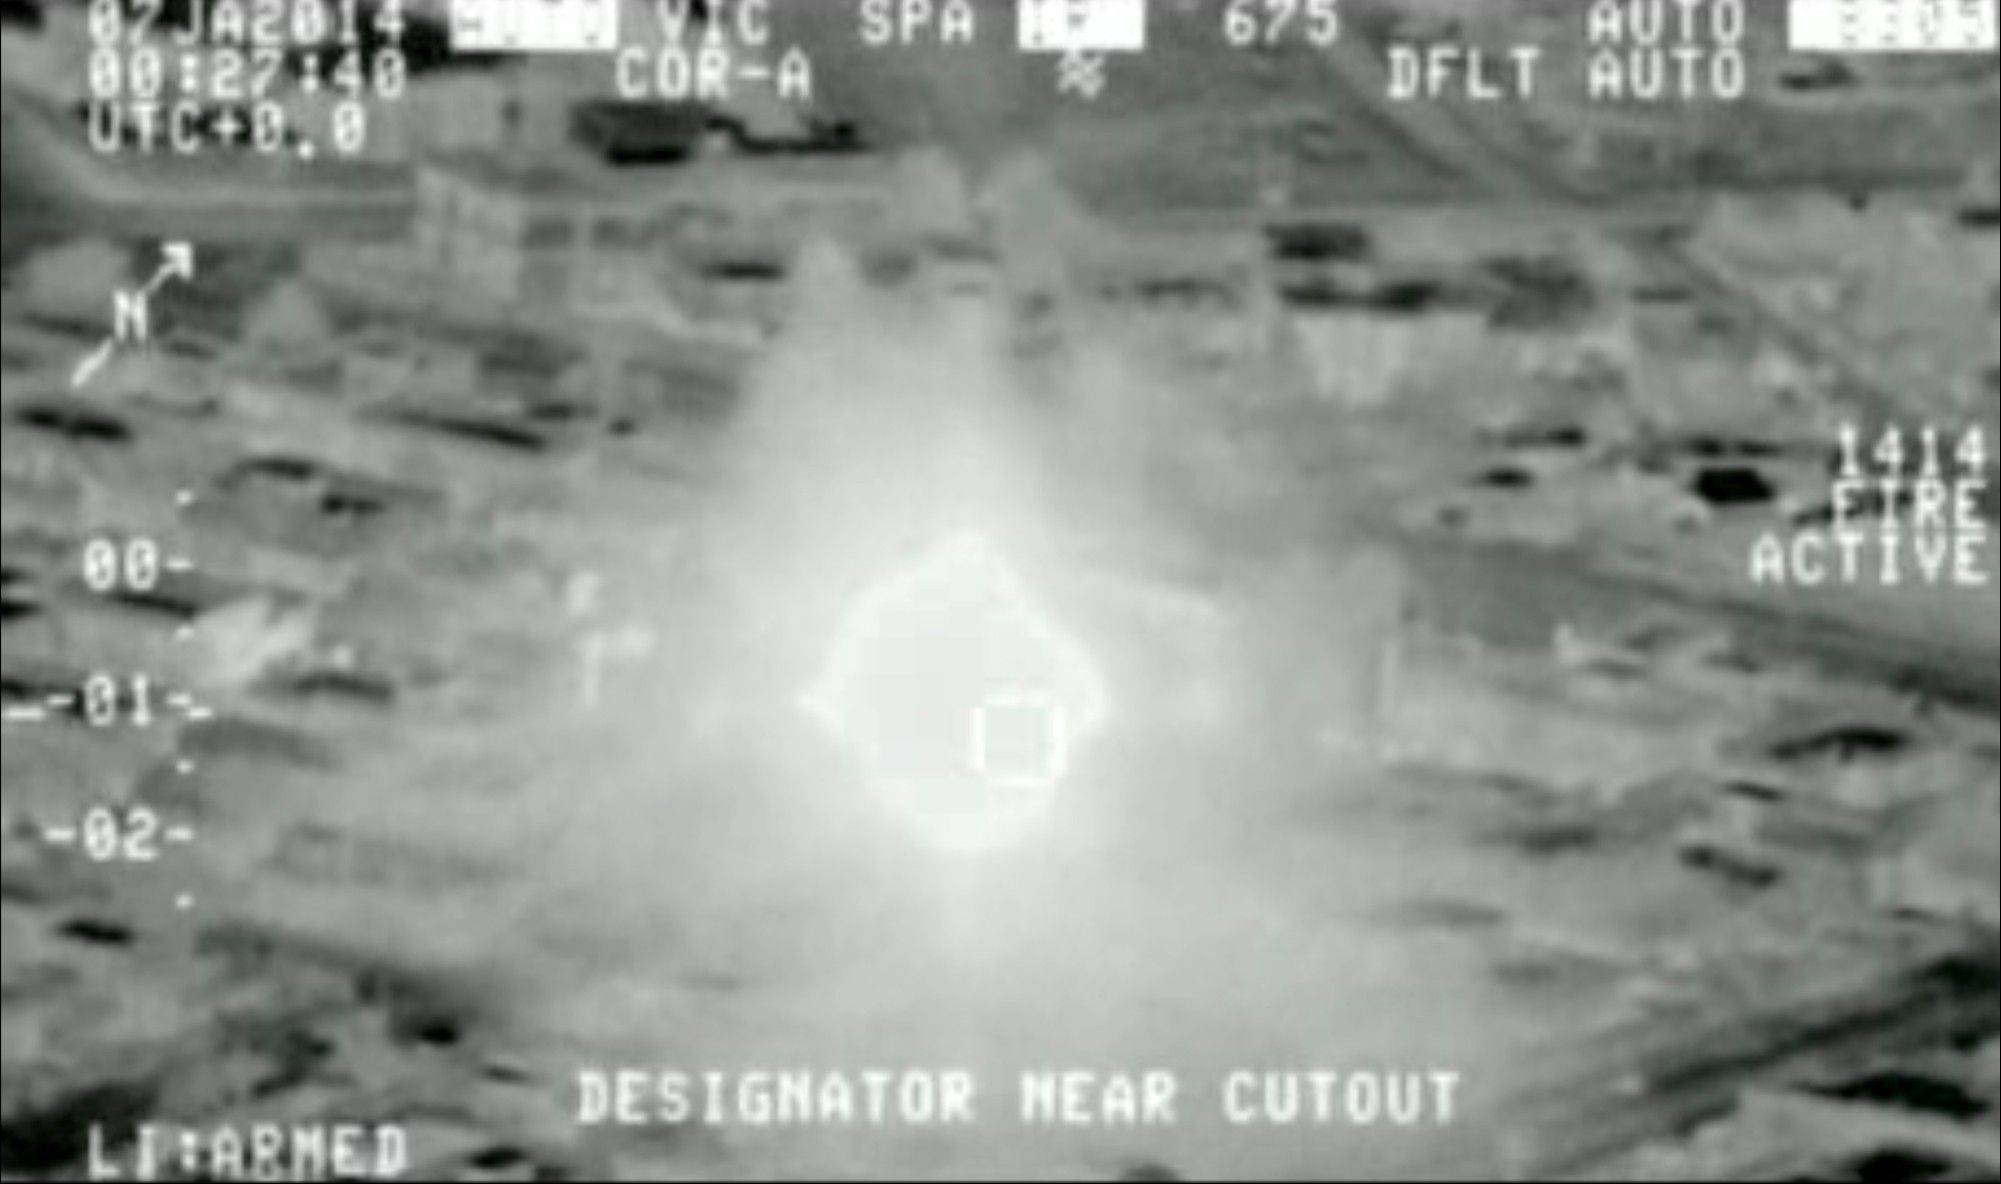 This Jan. 7, 2014, photo from aerial video provided by the Iraq Defence Ministry, but which the authenticity of cannot be independently verified by The Associated Press, shows an ammunition dump on fire after being hit by an airstrike, in Anbar Province, Iraq.